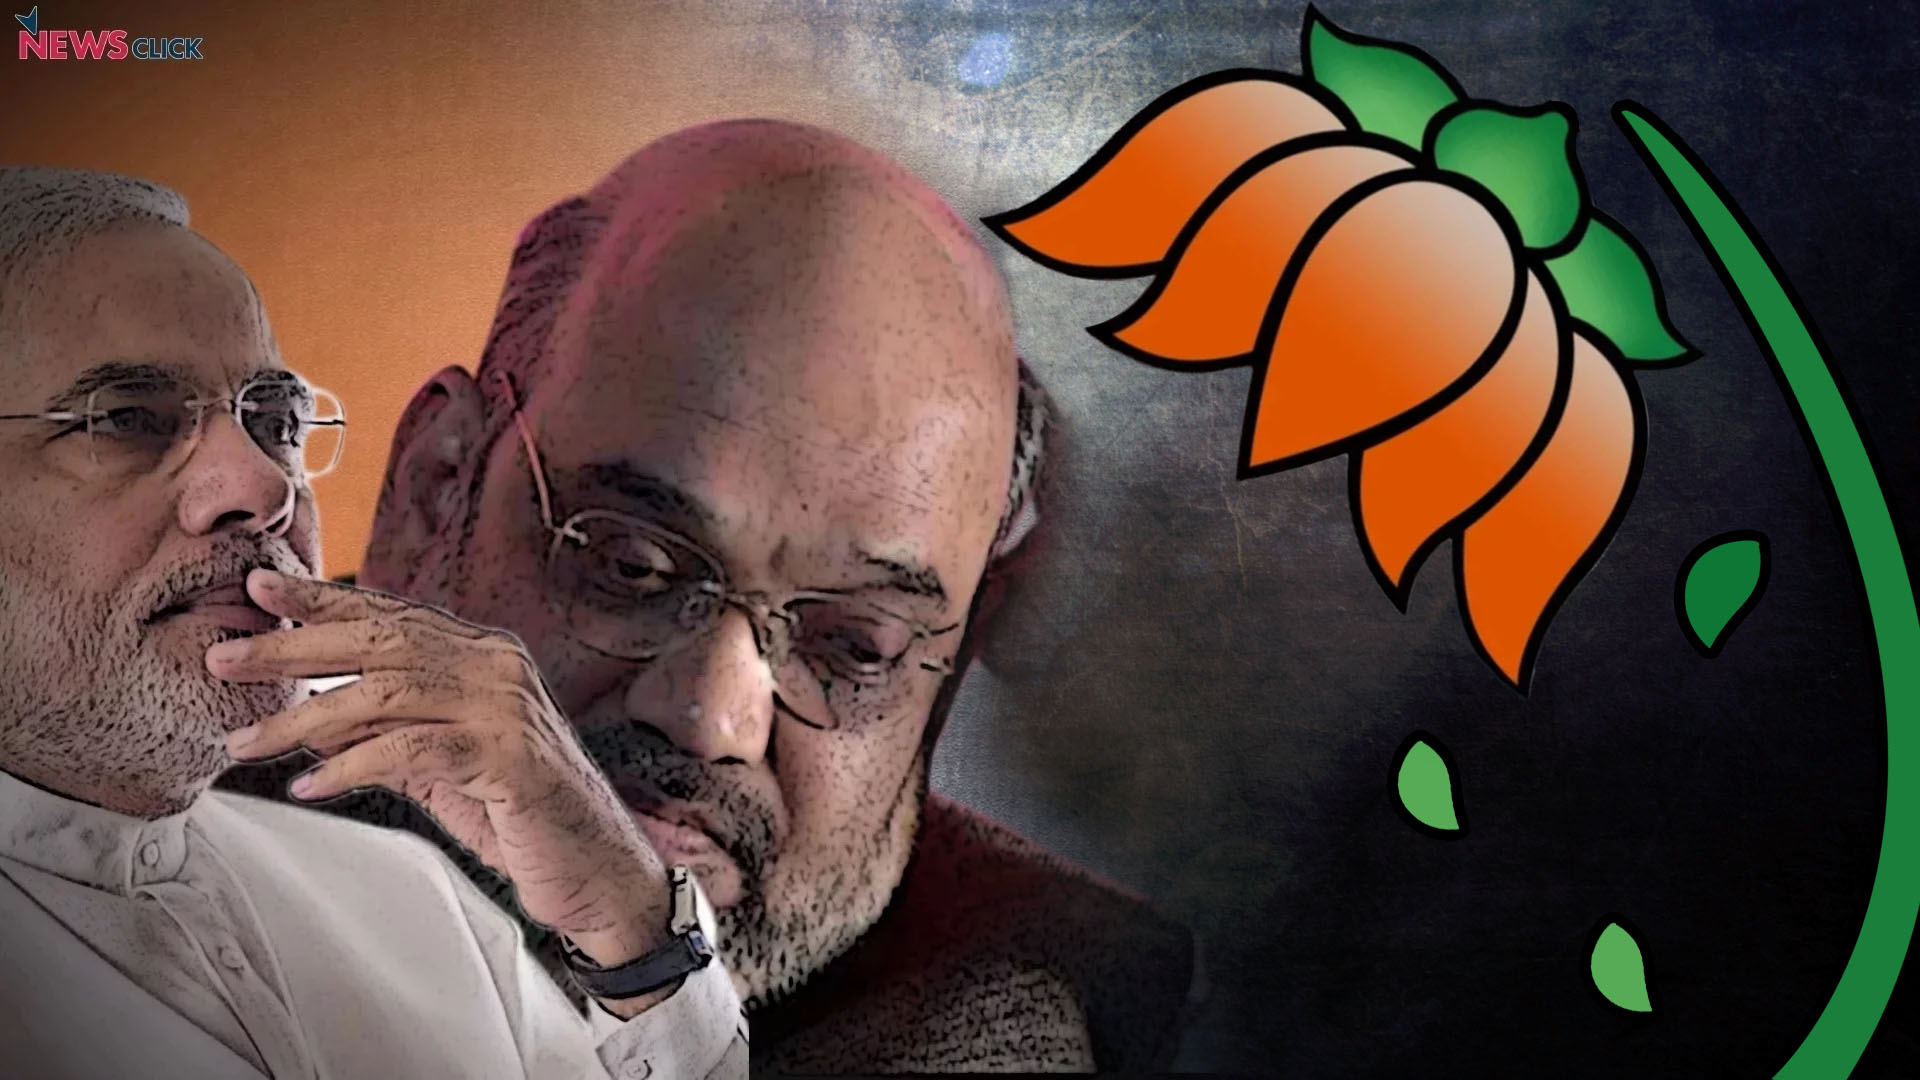 Elections 2019: BJP-Led NDA Faces Defeat, Final Projections